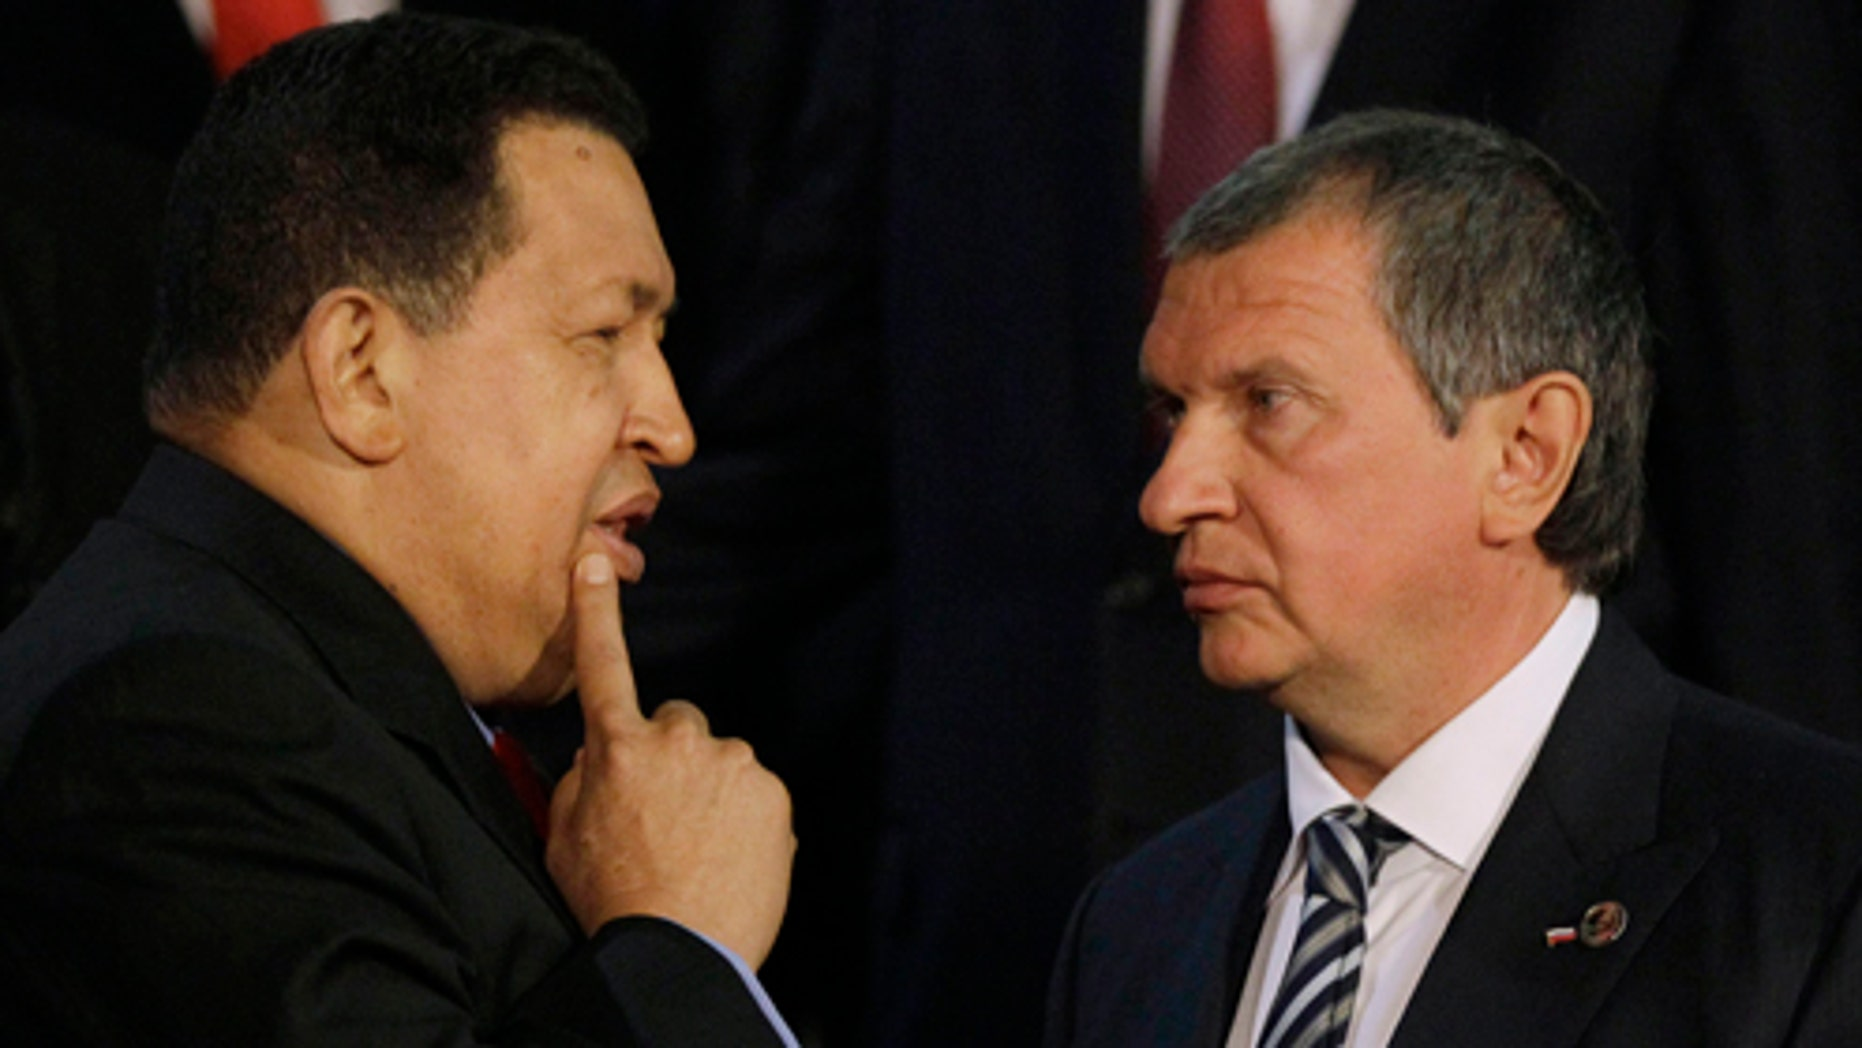 Venezuelaâs President Hugo Chavez, left, speaks with Igor Sechin, the CEO of Russia's state-controlled Rosneft oil company, after a meeting at Miraflores presidential palace in Caracas, Venezuela, Thursday, Sept. 27, 2012. Chavez has built close ties with Russia, and on Thursday, a joint venture involving state oil company Petroleos de Venezuela SA and a consortium of Russian oil companies began to tap a rich deposit of heavy oil in eastern Venezuela. (AP Photo/Ariana Cubillos)